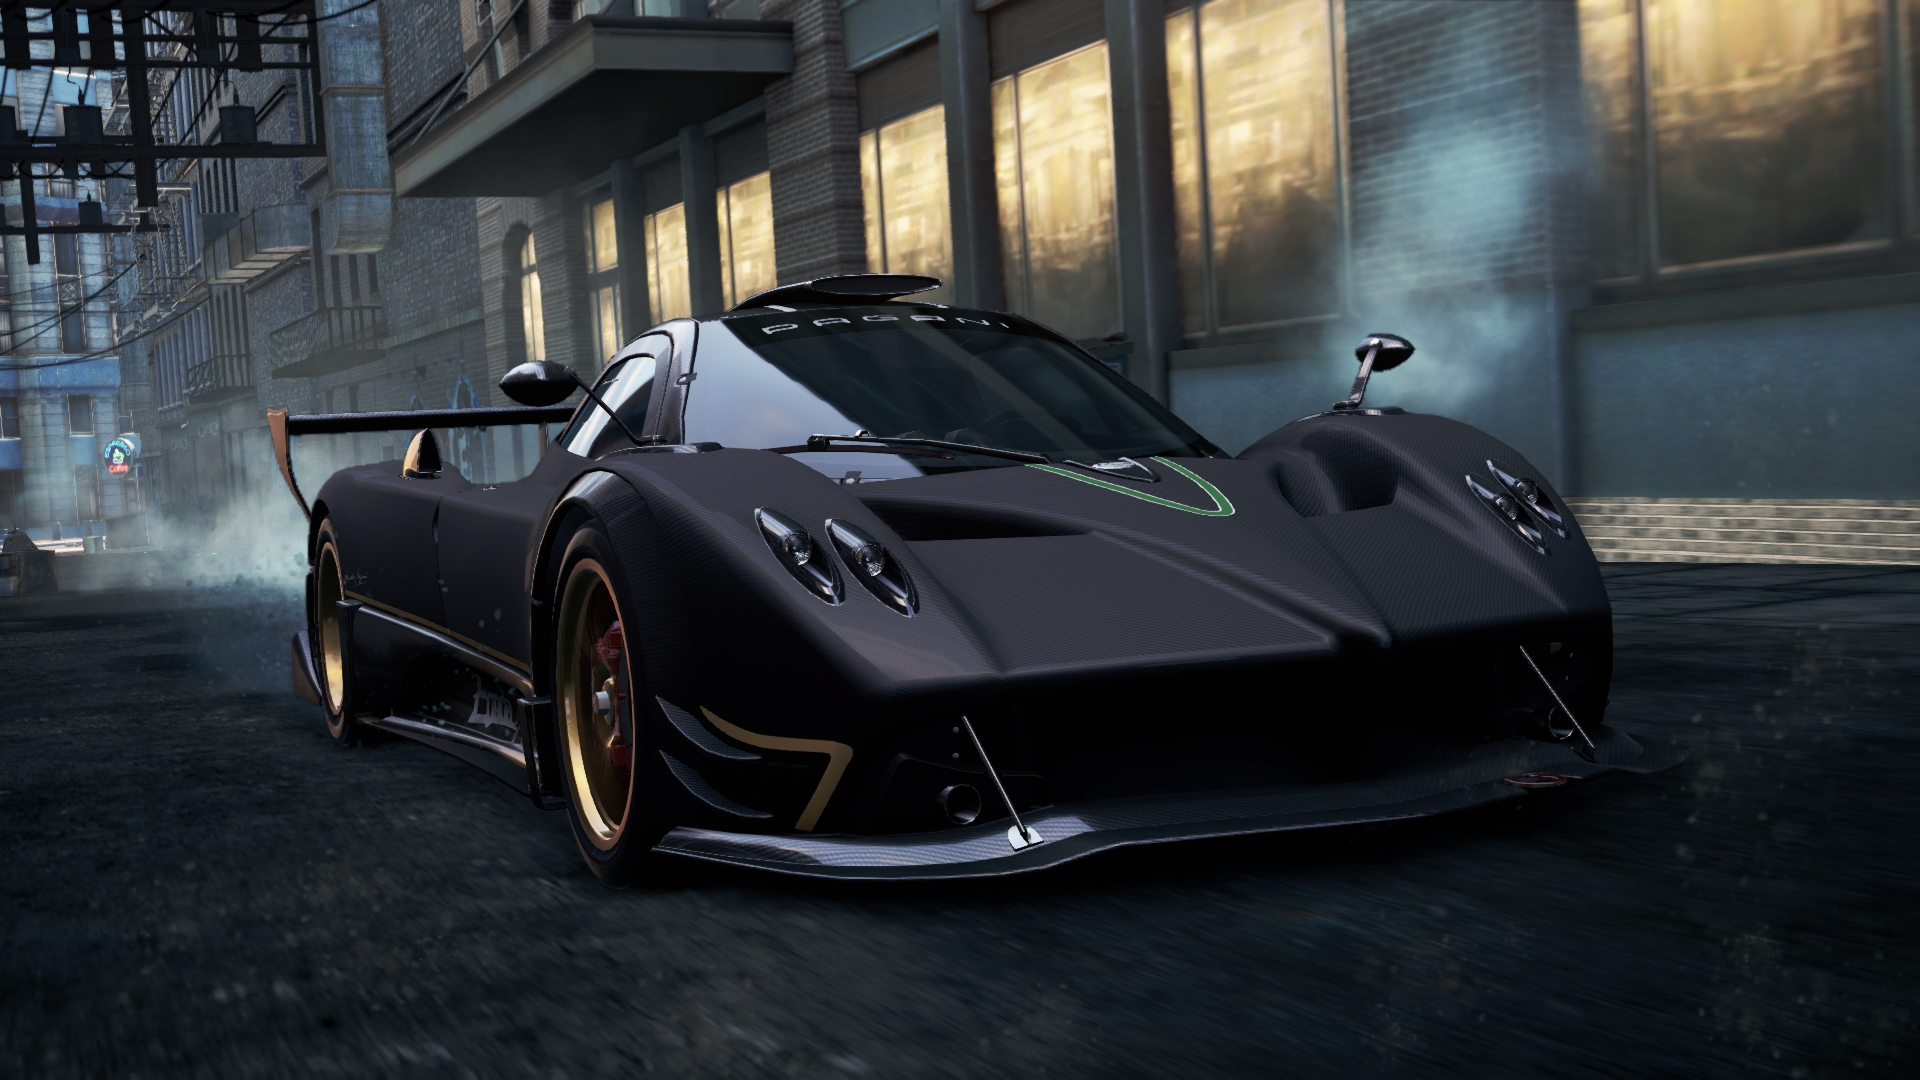 Pagani Zonda R | Need for Speed Wiki | FANDOM powered by Wikia